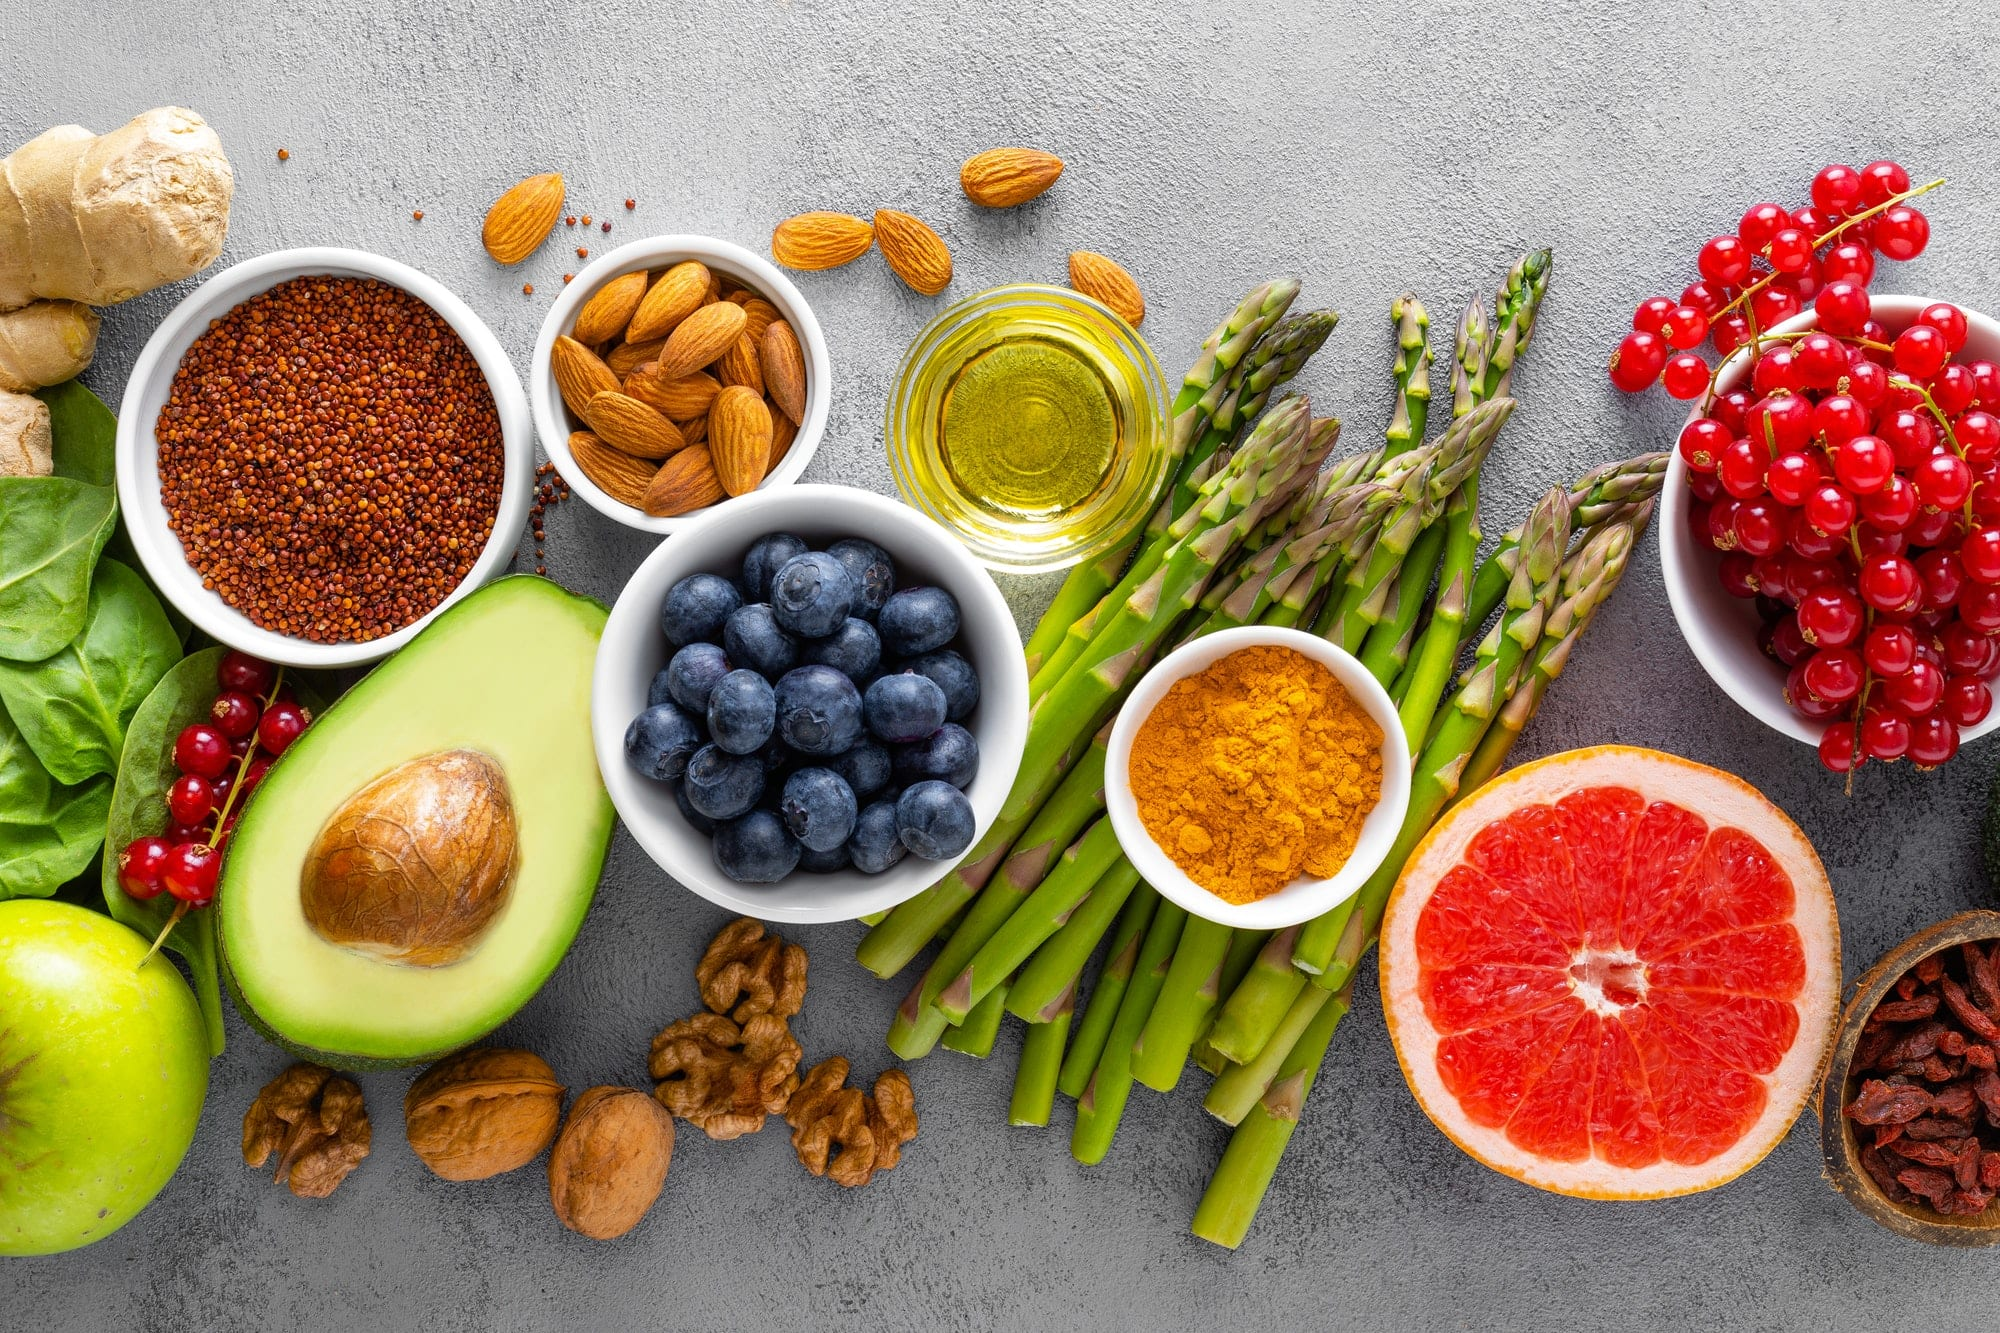 Healthy fruits, nuts, and greens